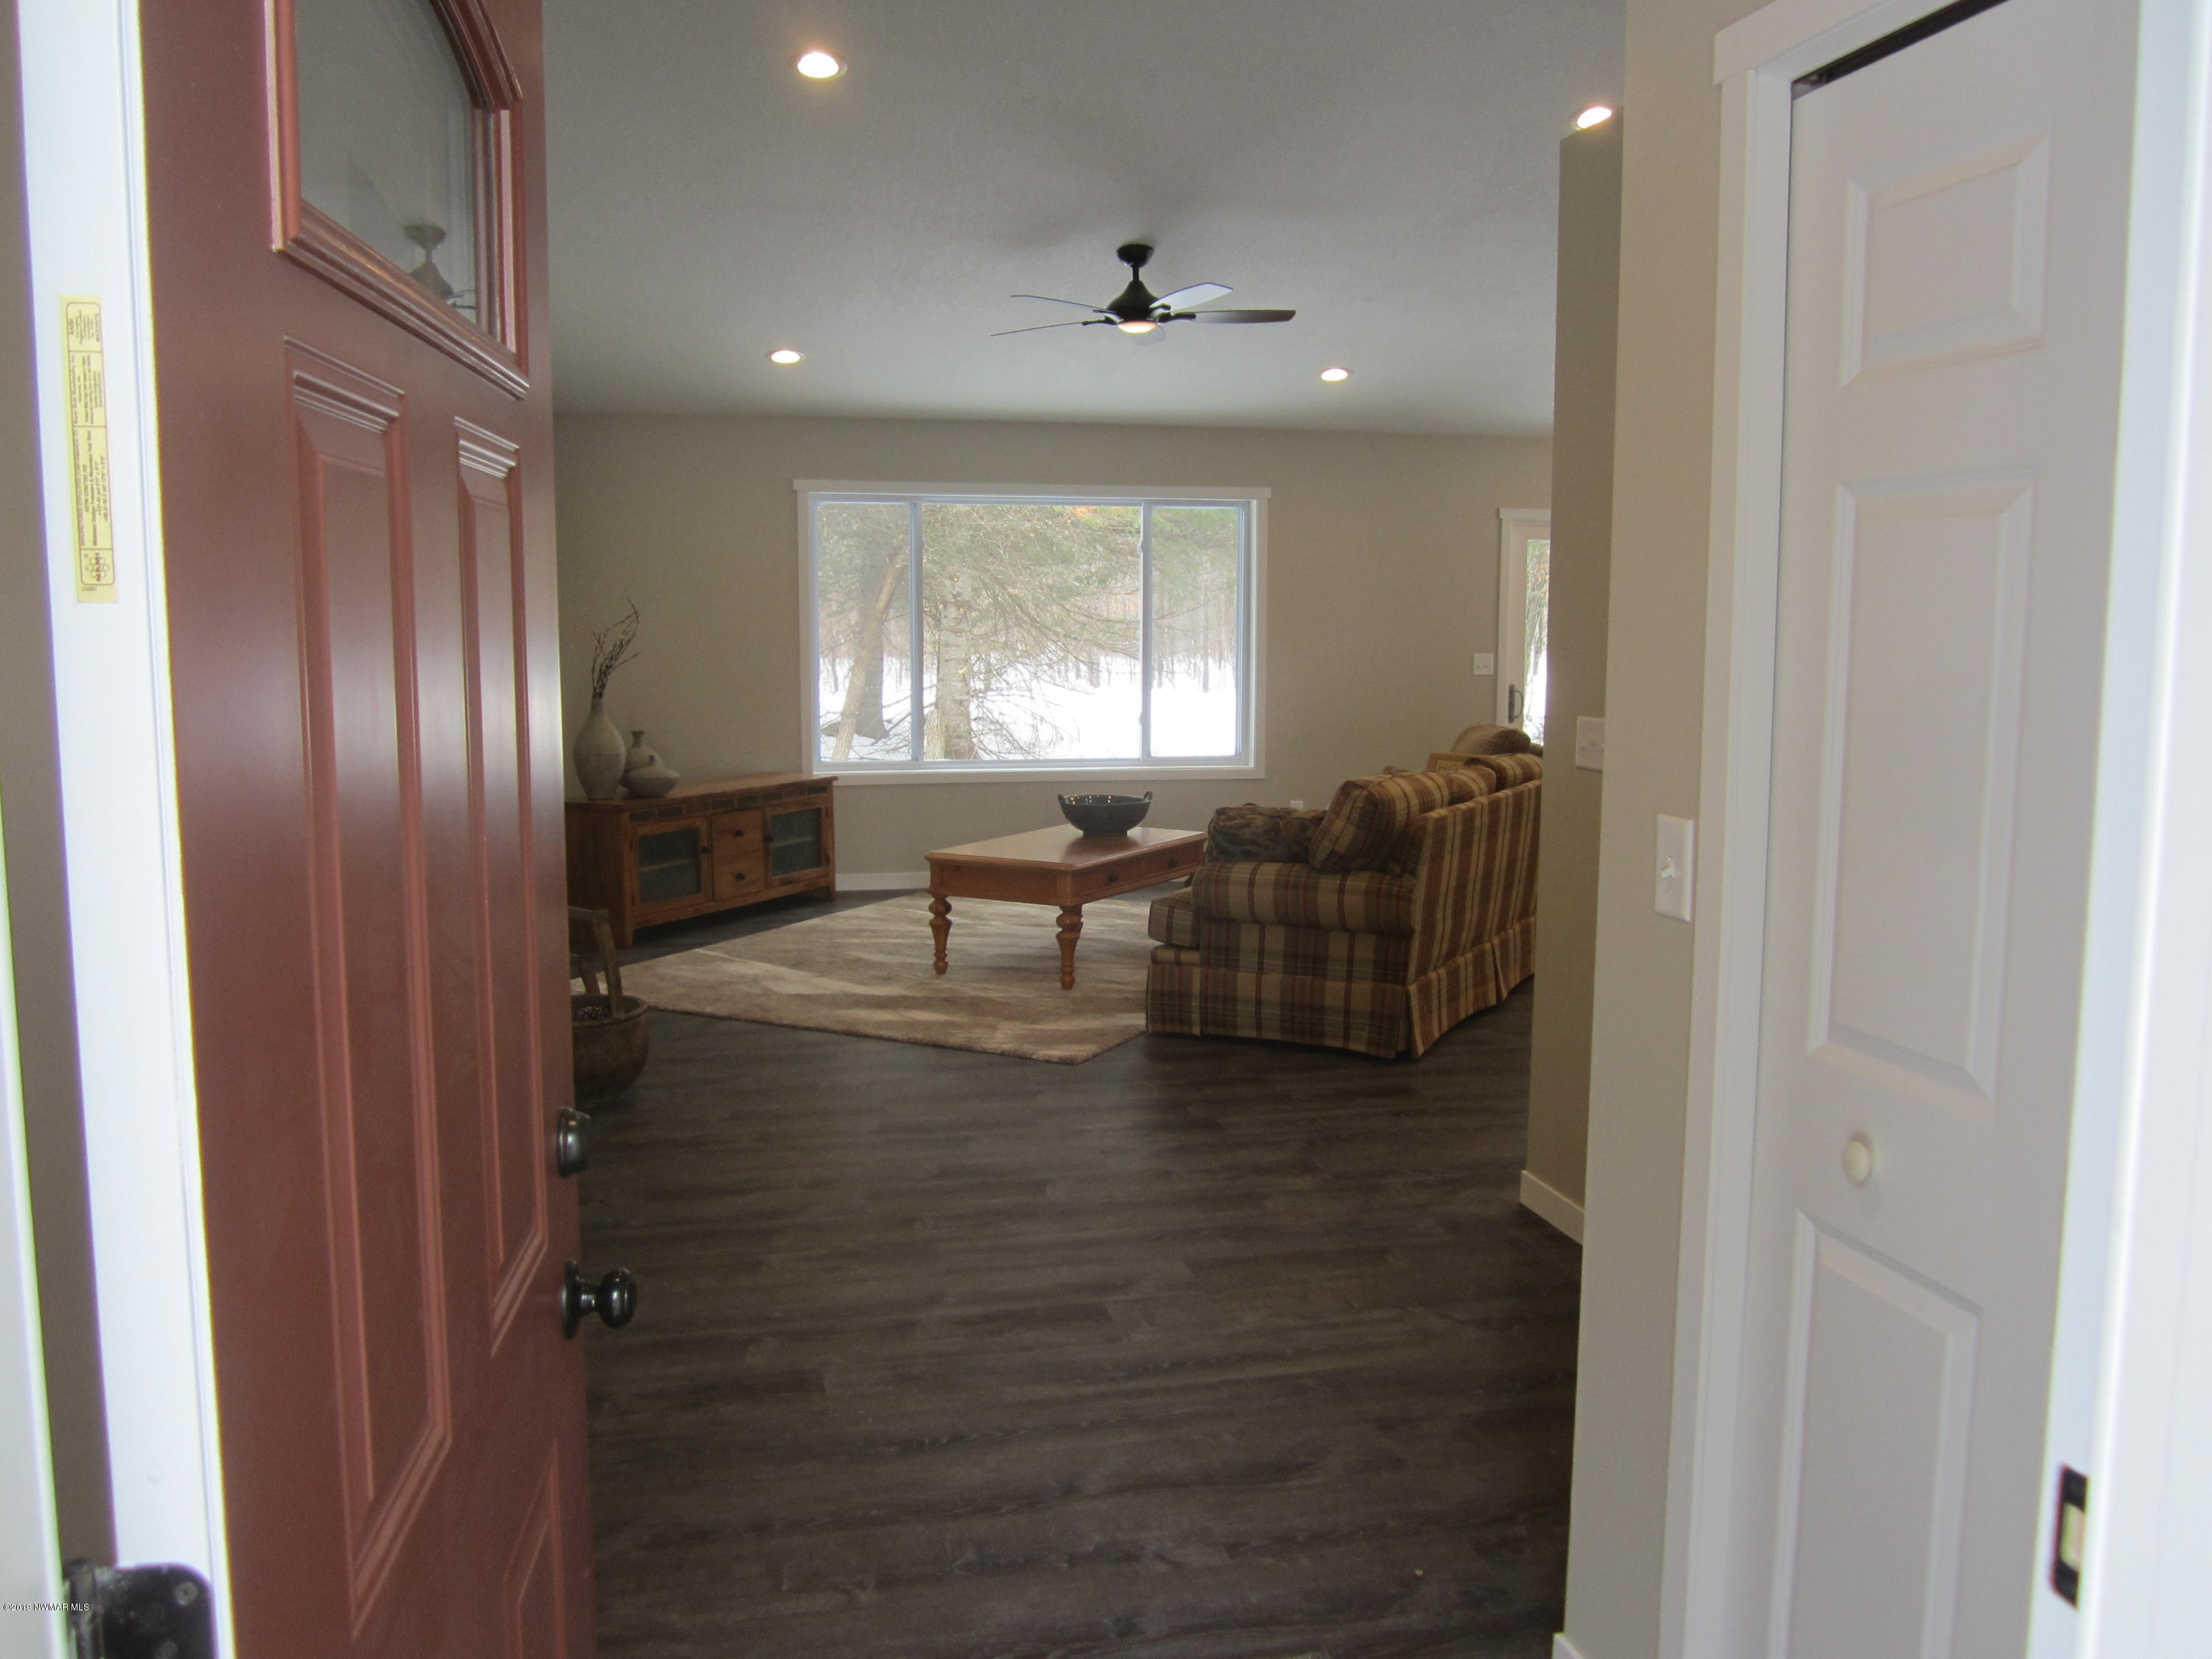 Enter your spacious, beautiful new home on 9 acres.